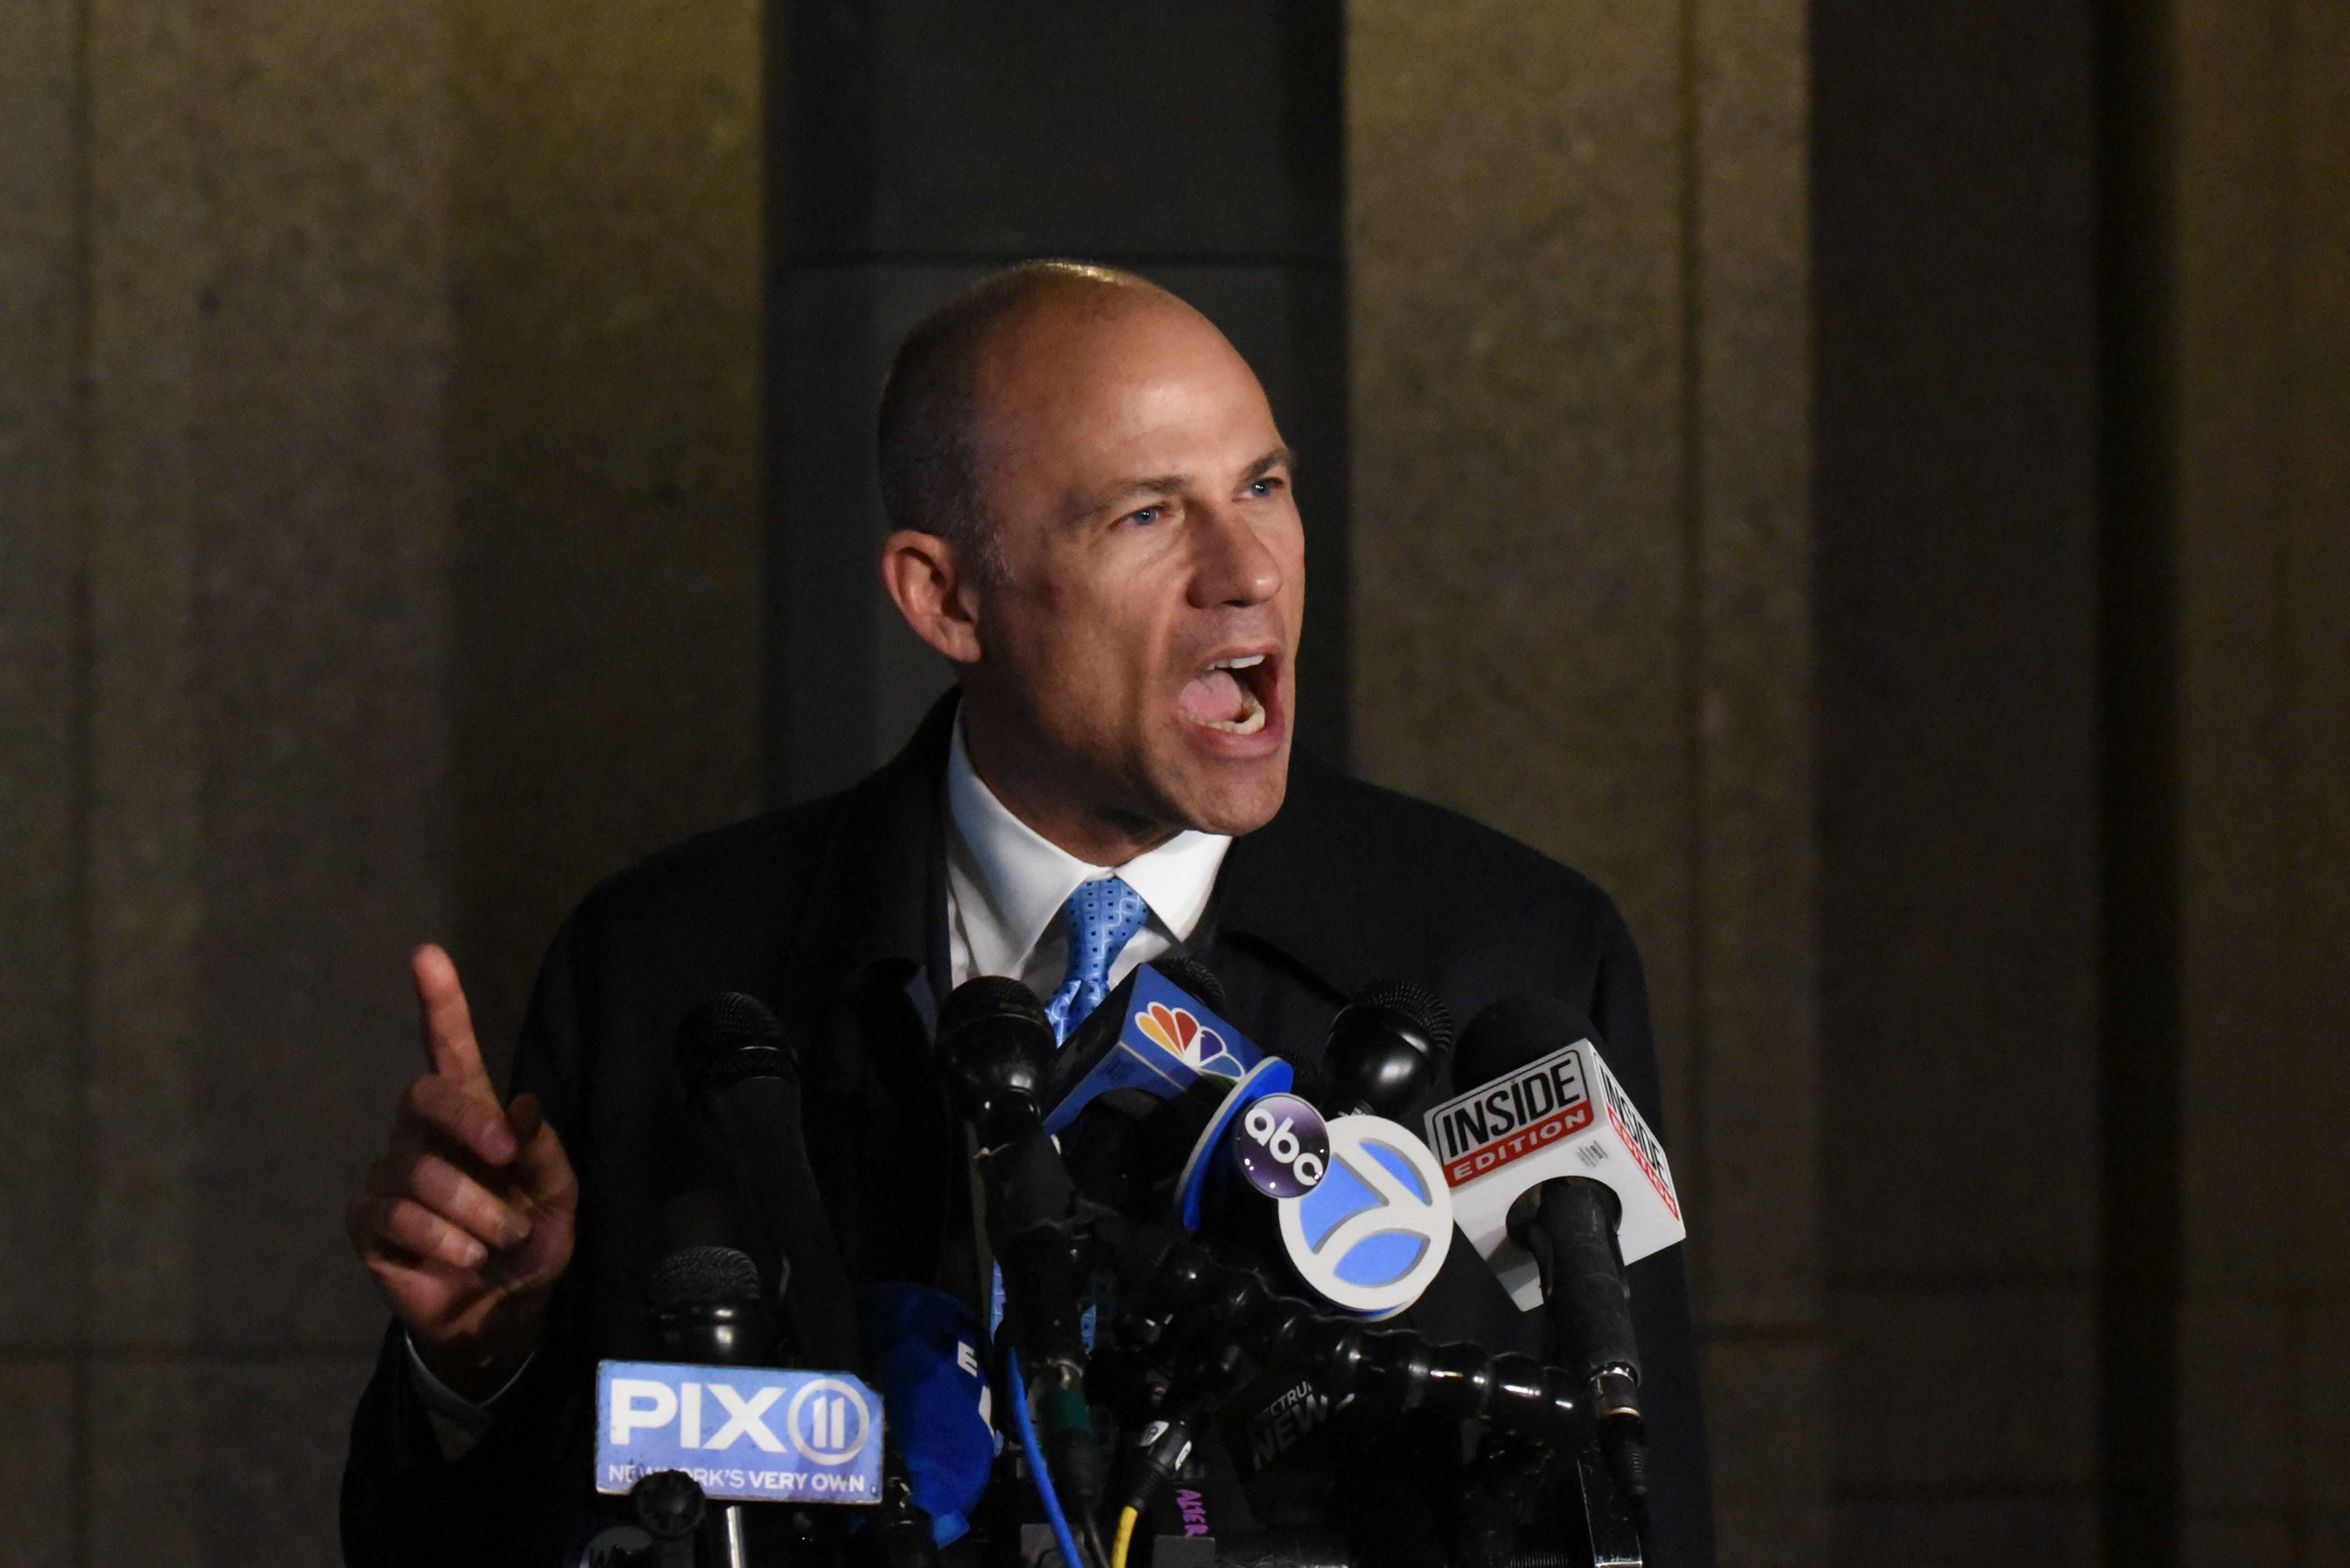 Michael Avenatti, the former lawyer for adult film actress Stormy Daniels' and a fierce critic of President Donald Trump, speaks to the media after being arrested for allegedly trying to extort Nike for $15-$25 million on March 25, 2019 in New York City. (Photo by Stephanie Keith/Getty Images)